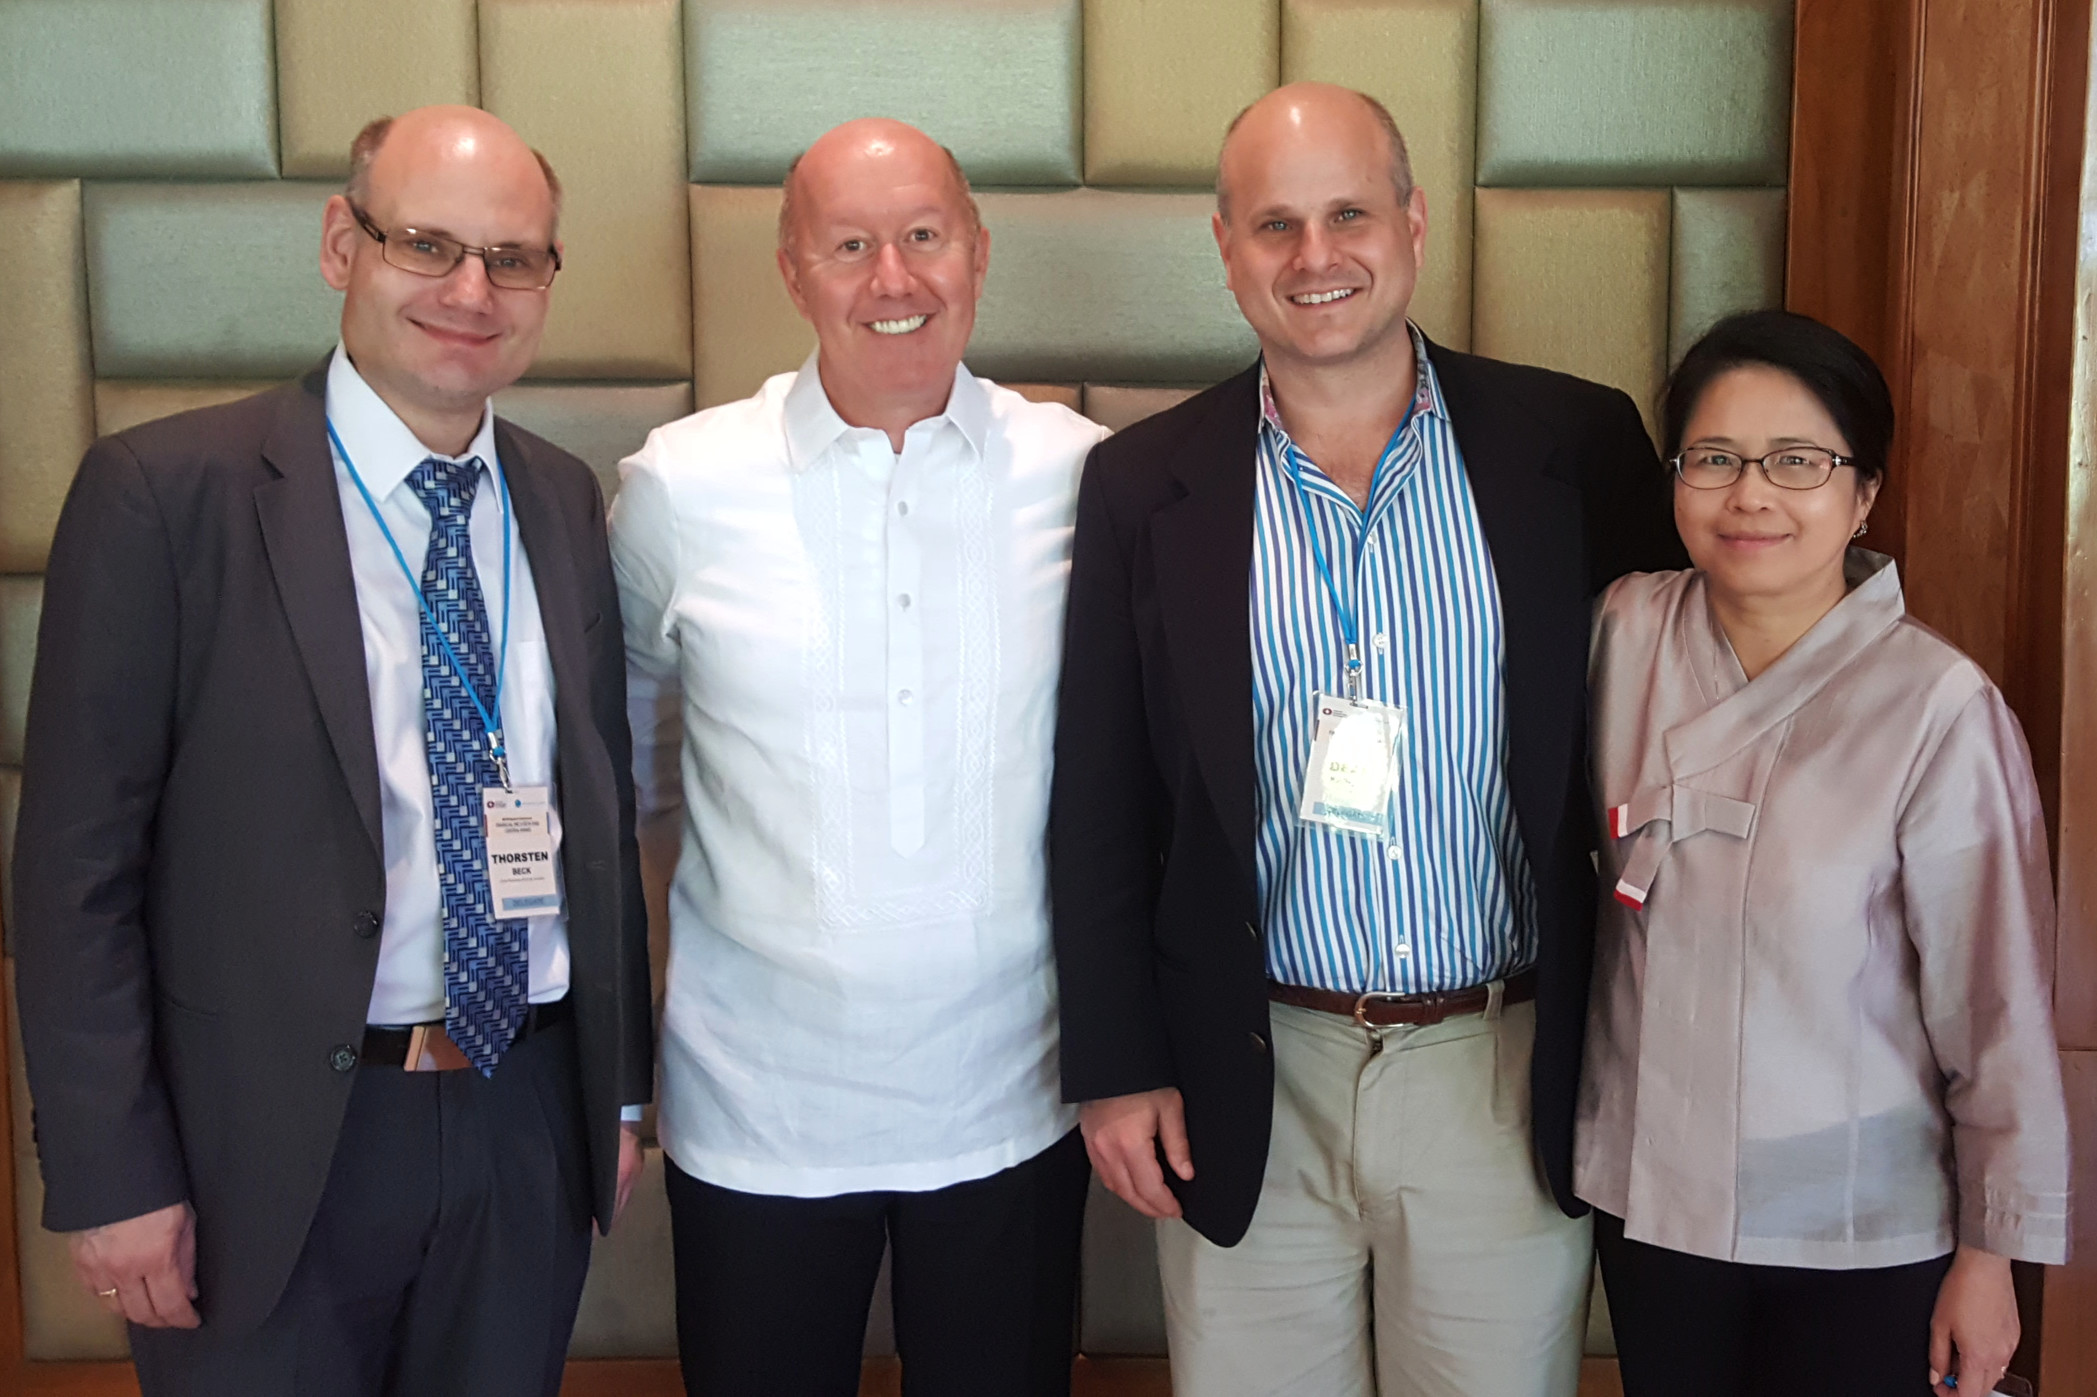 Thorsten Beck, Francis Warnock, Dean Karlan and Veronica Warnock were each selected to share their research on financial inclusion with executives from Asia's central banks. All four are either faculty members or graduates of UVA. (Contributed photo)